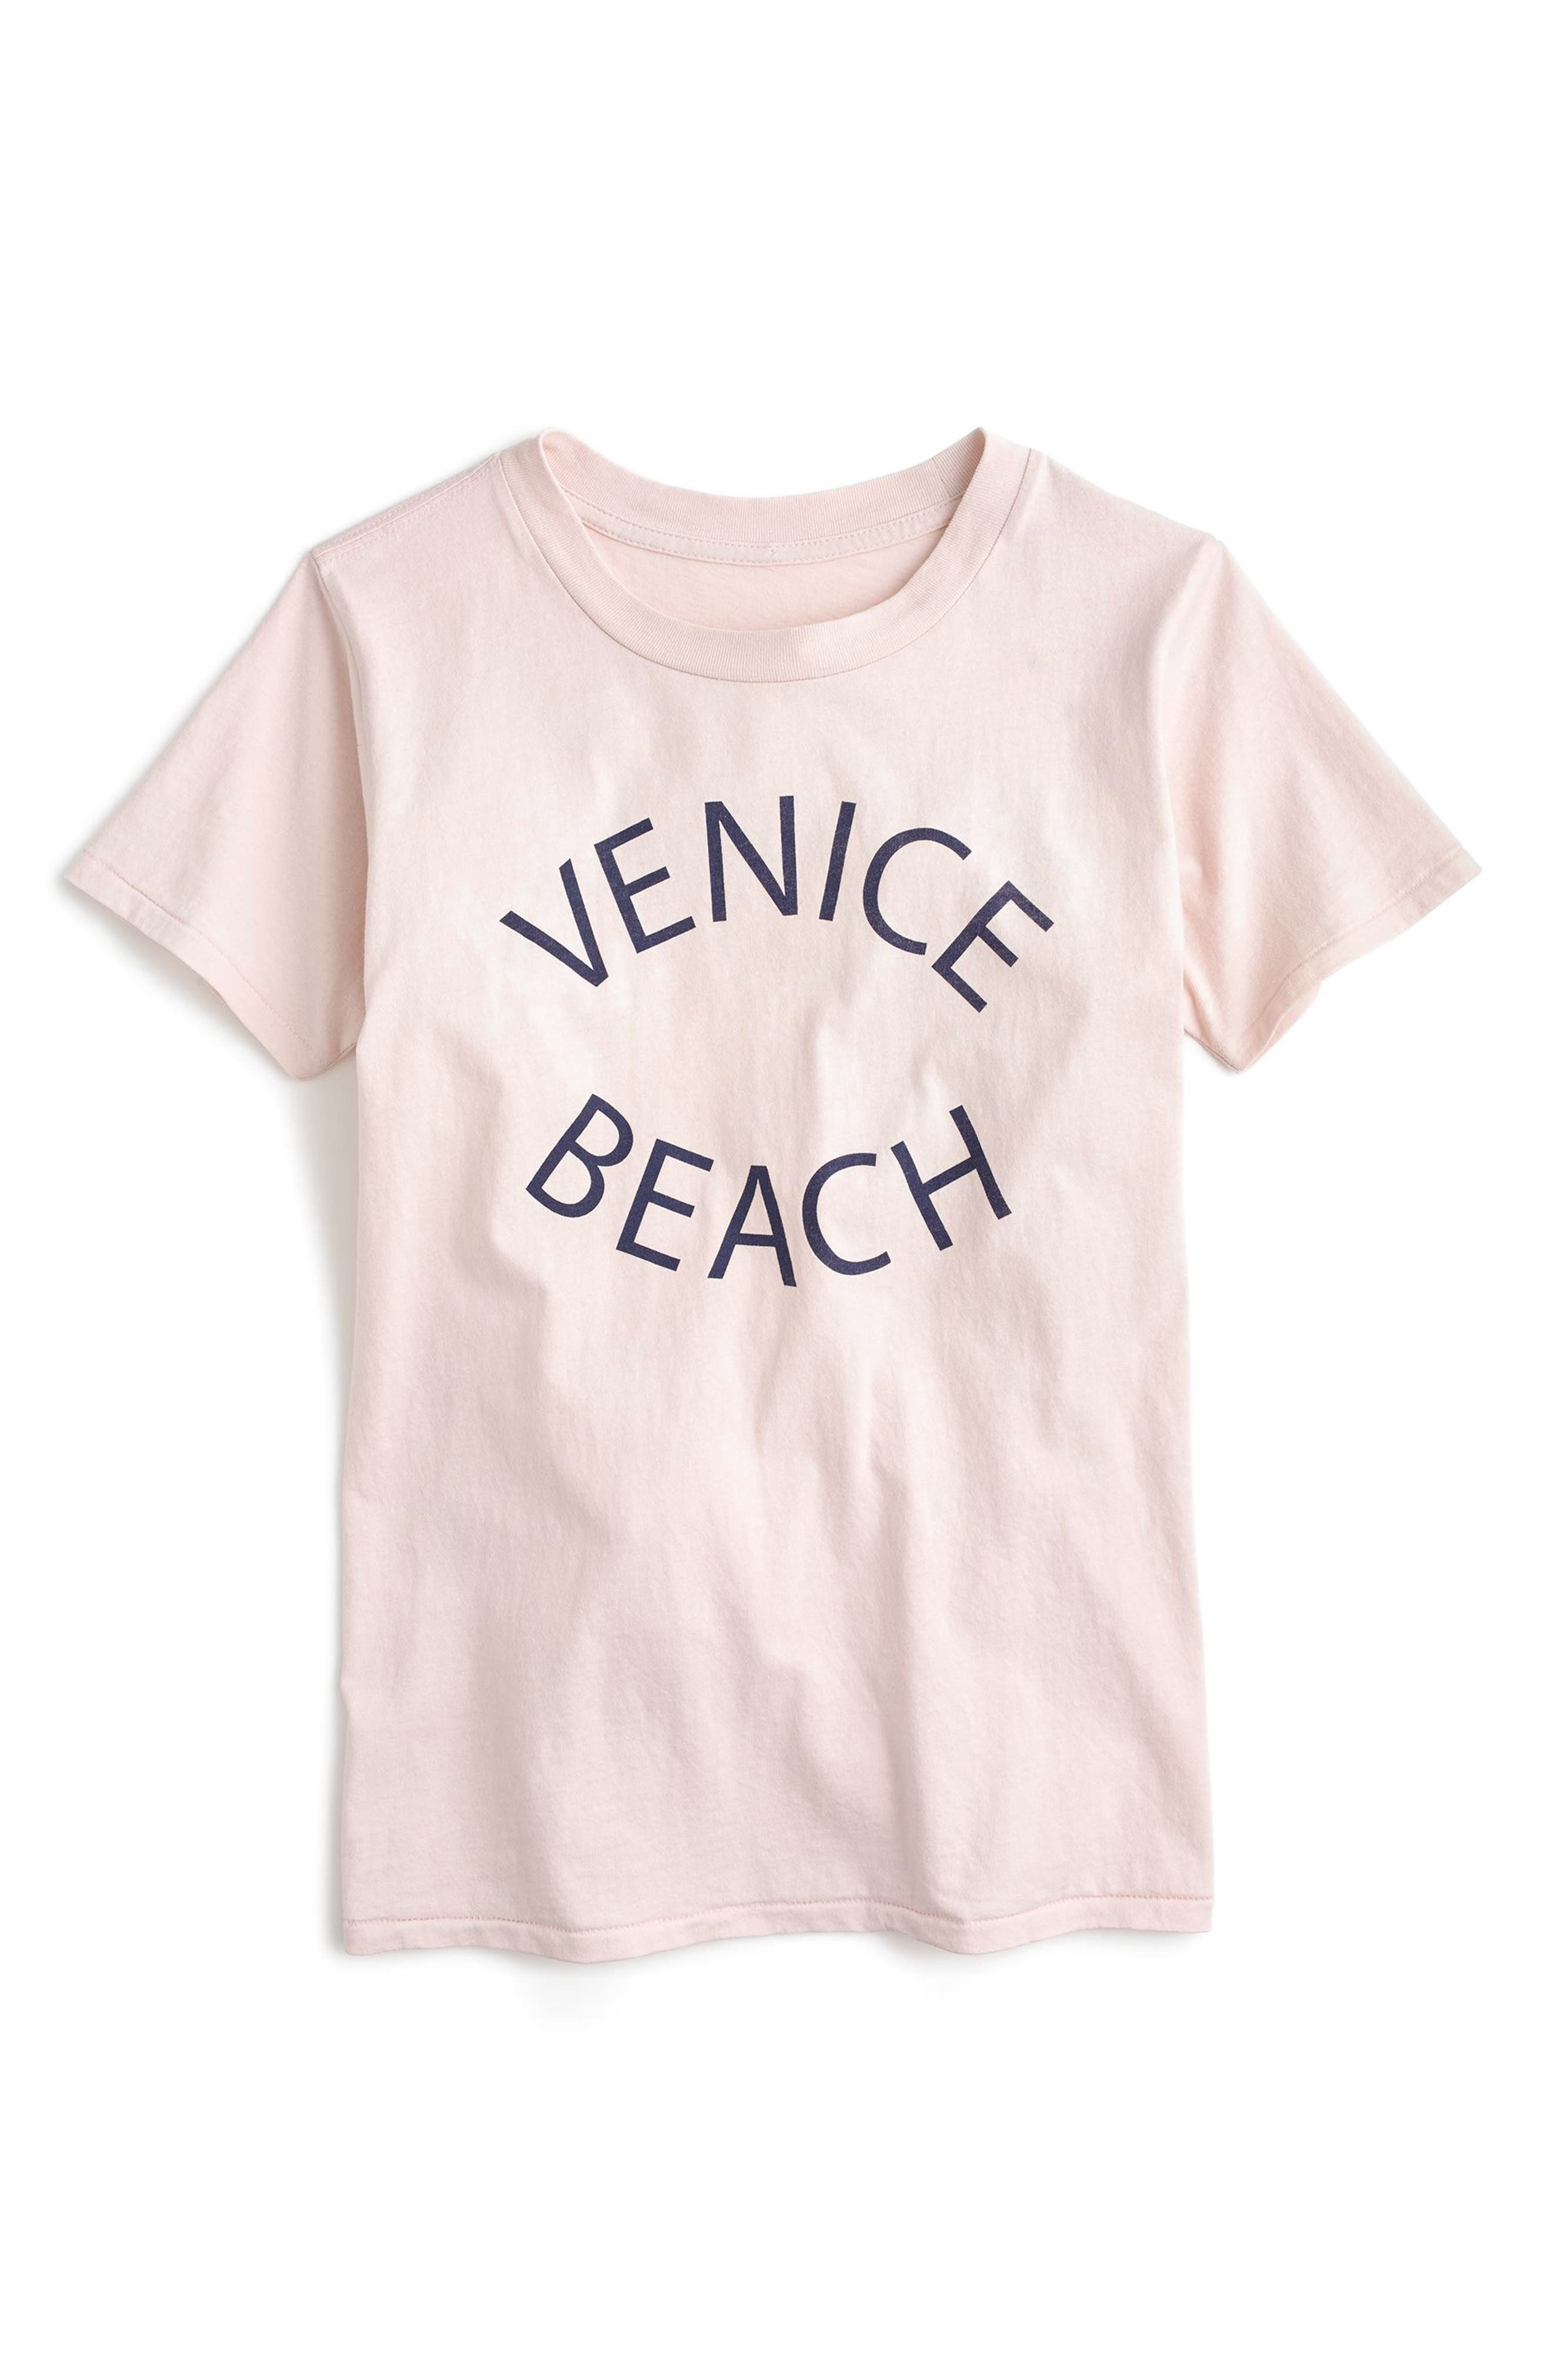 Venice Beach Graphic Tee,                             Main thumbnail 1, color,                             Picturesque Pink